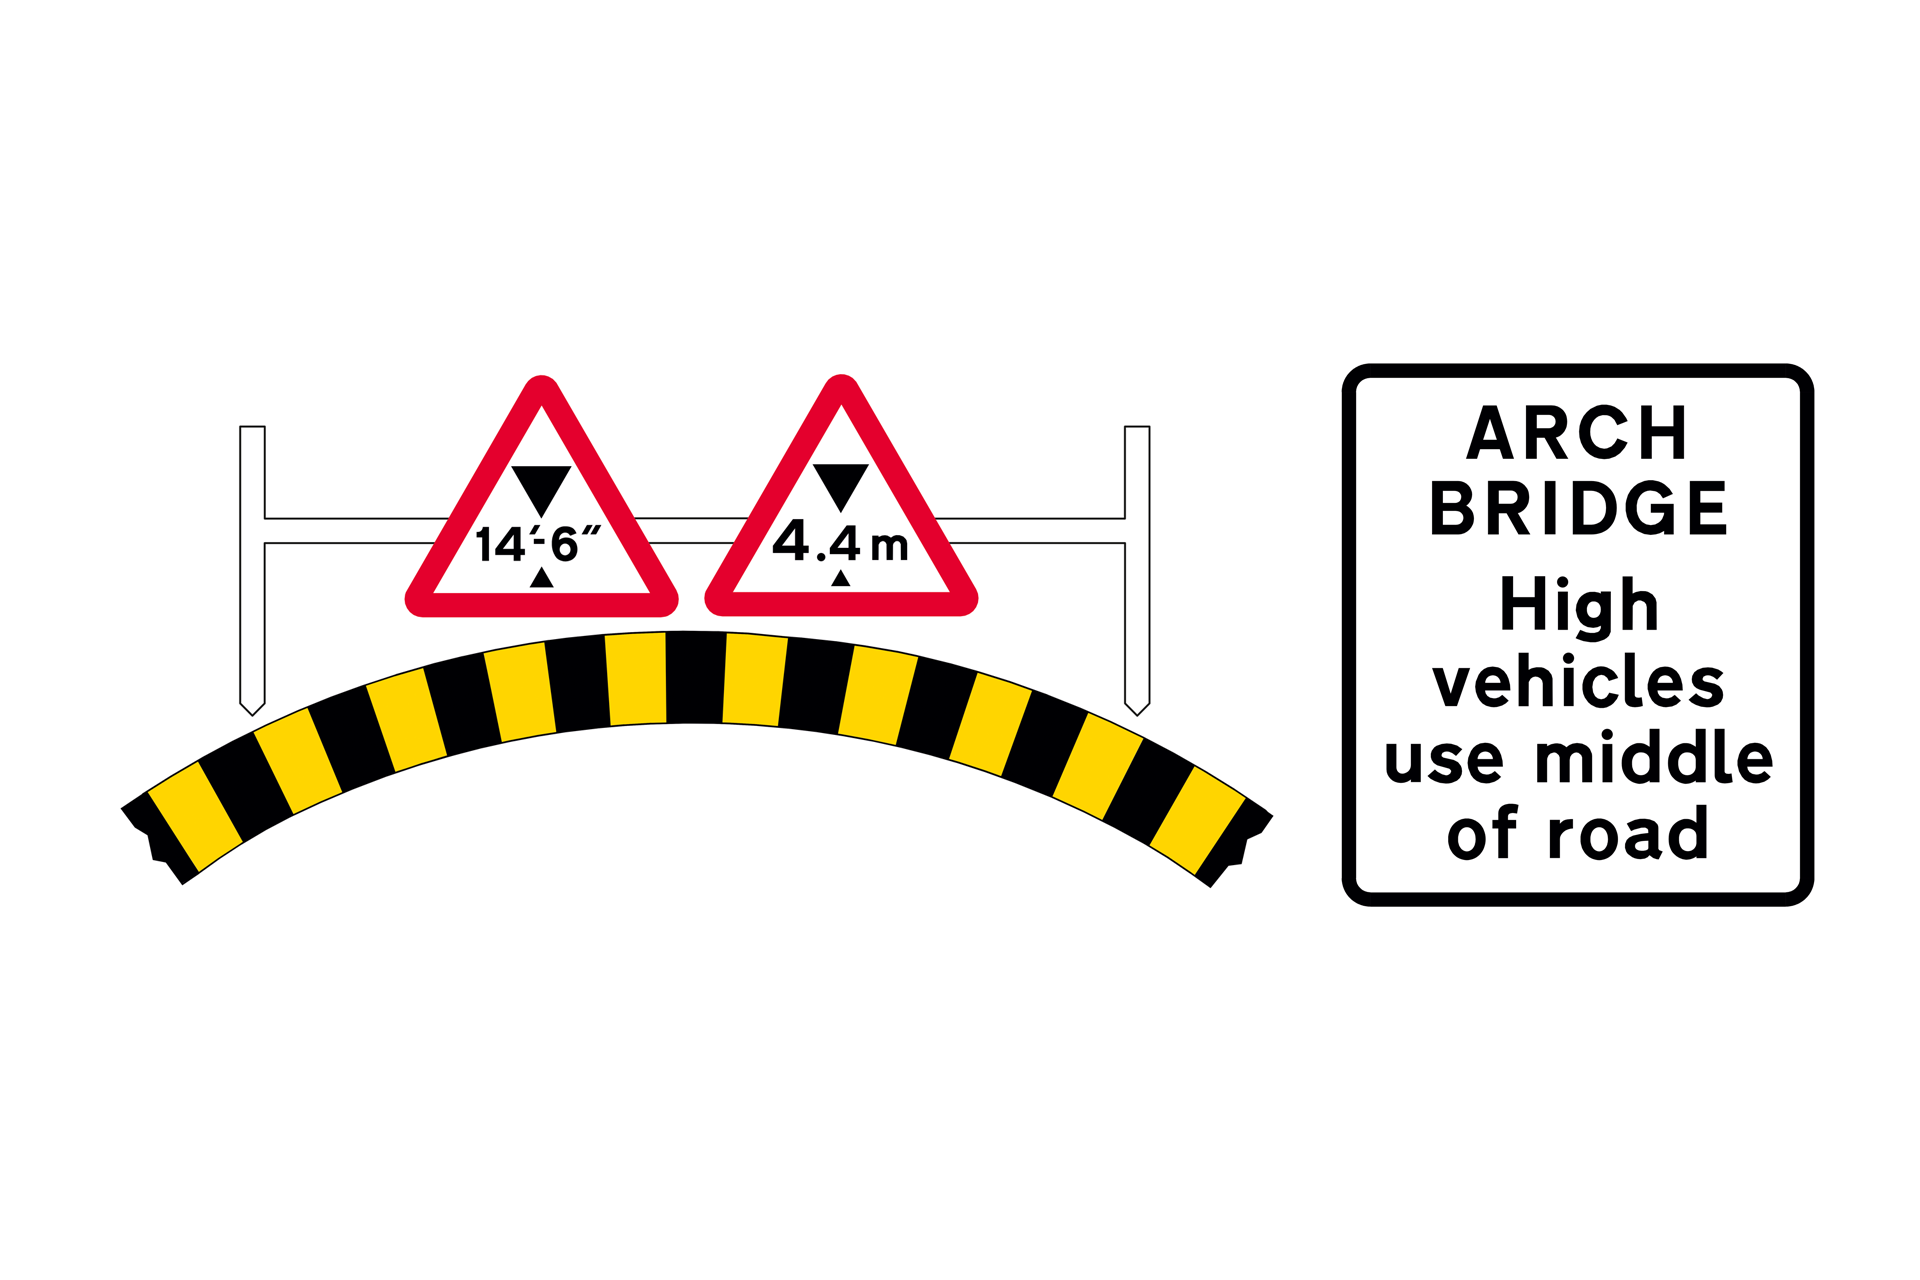 Advance warning of a low bridge road signs